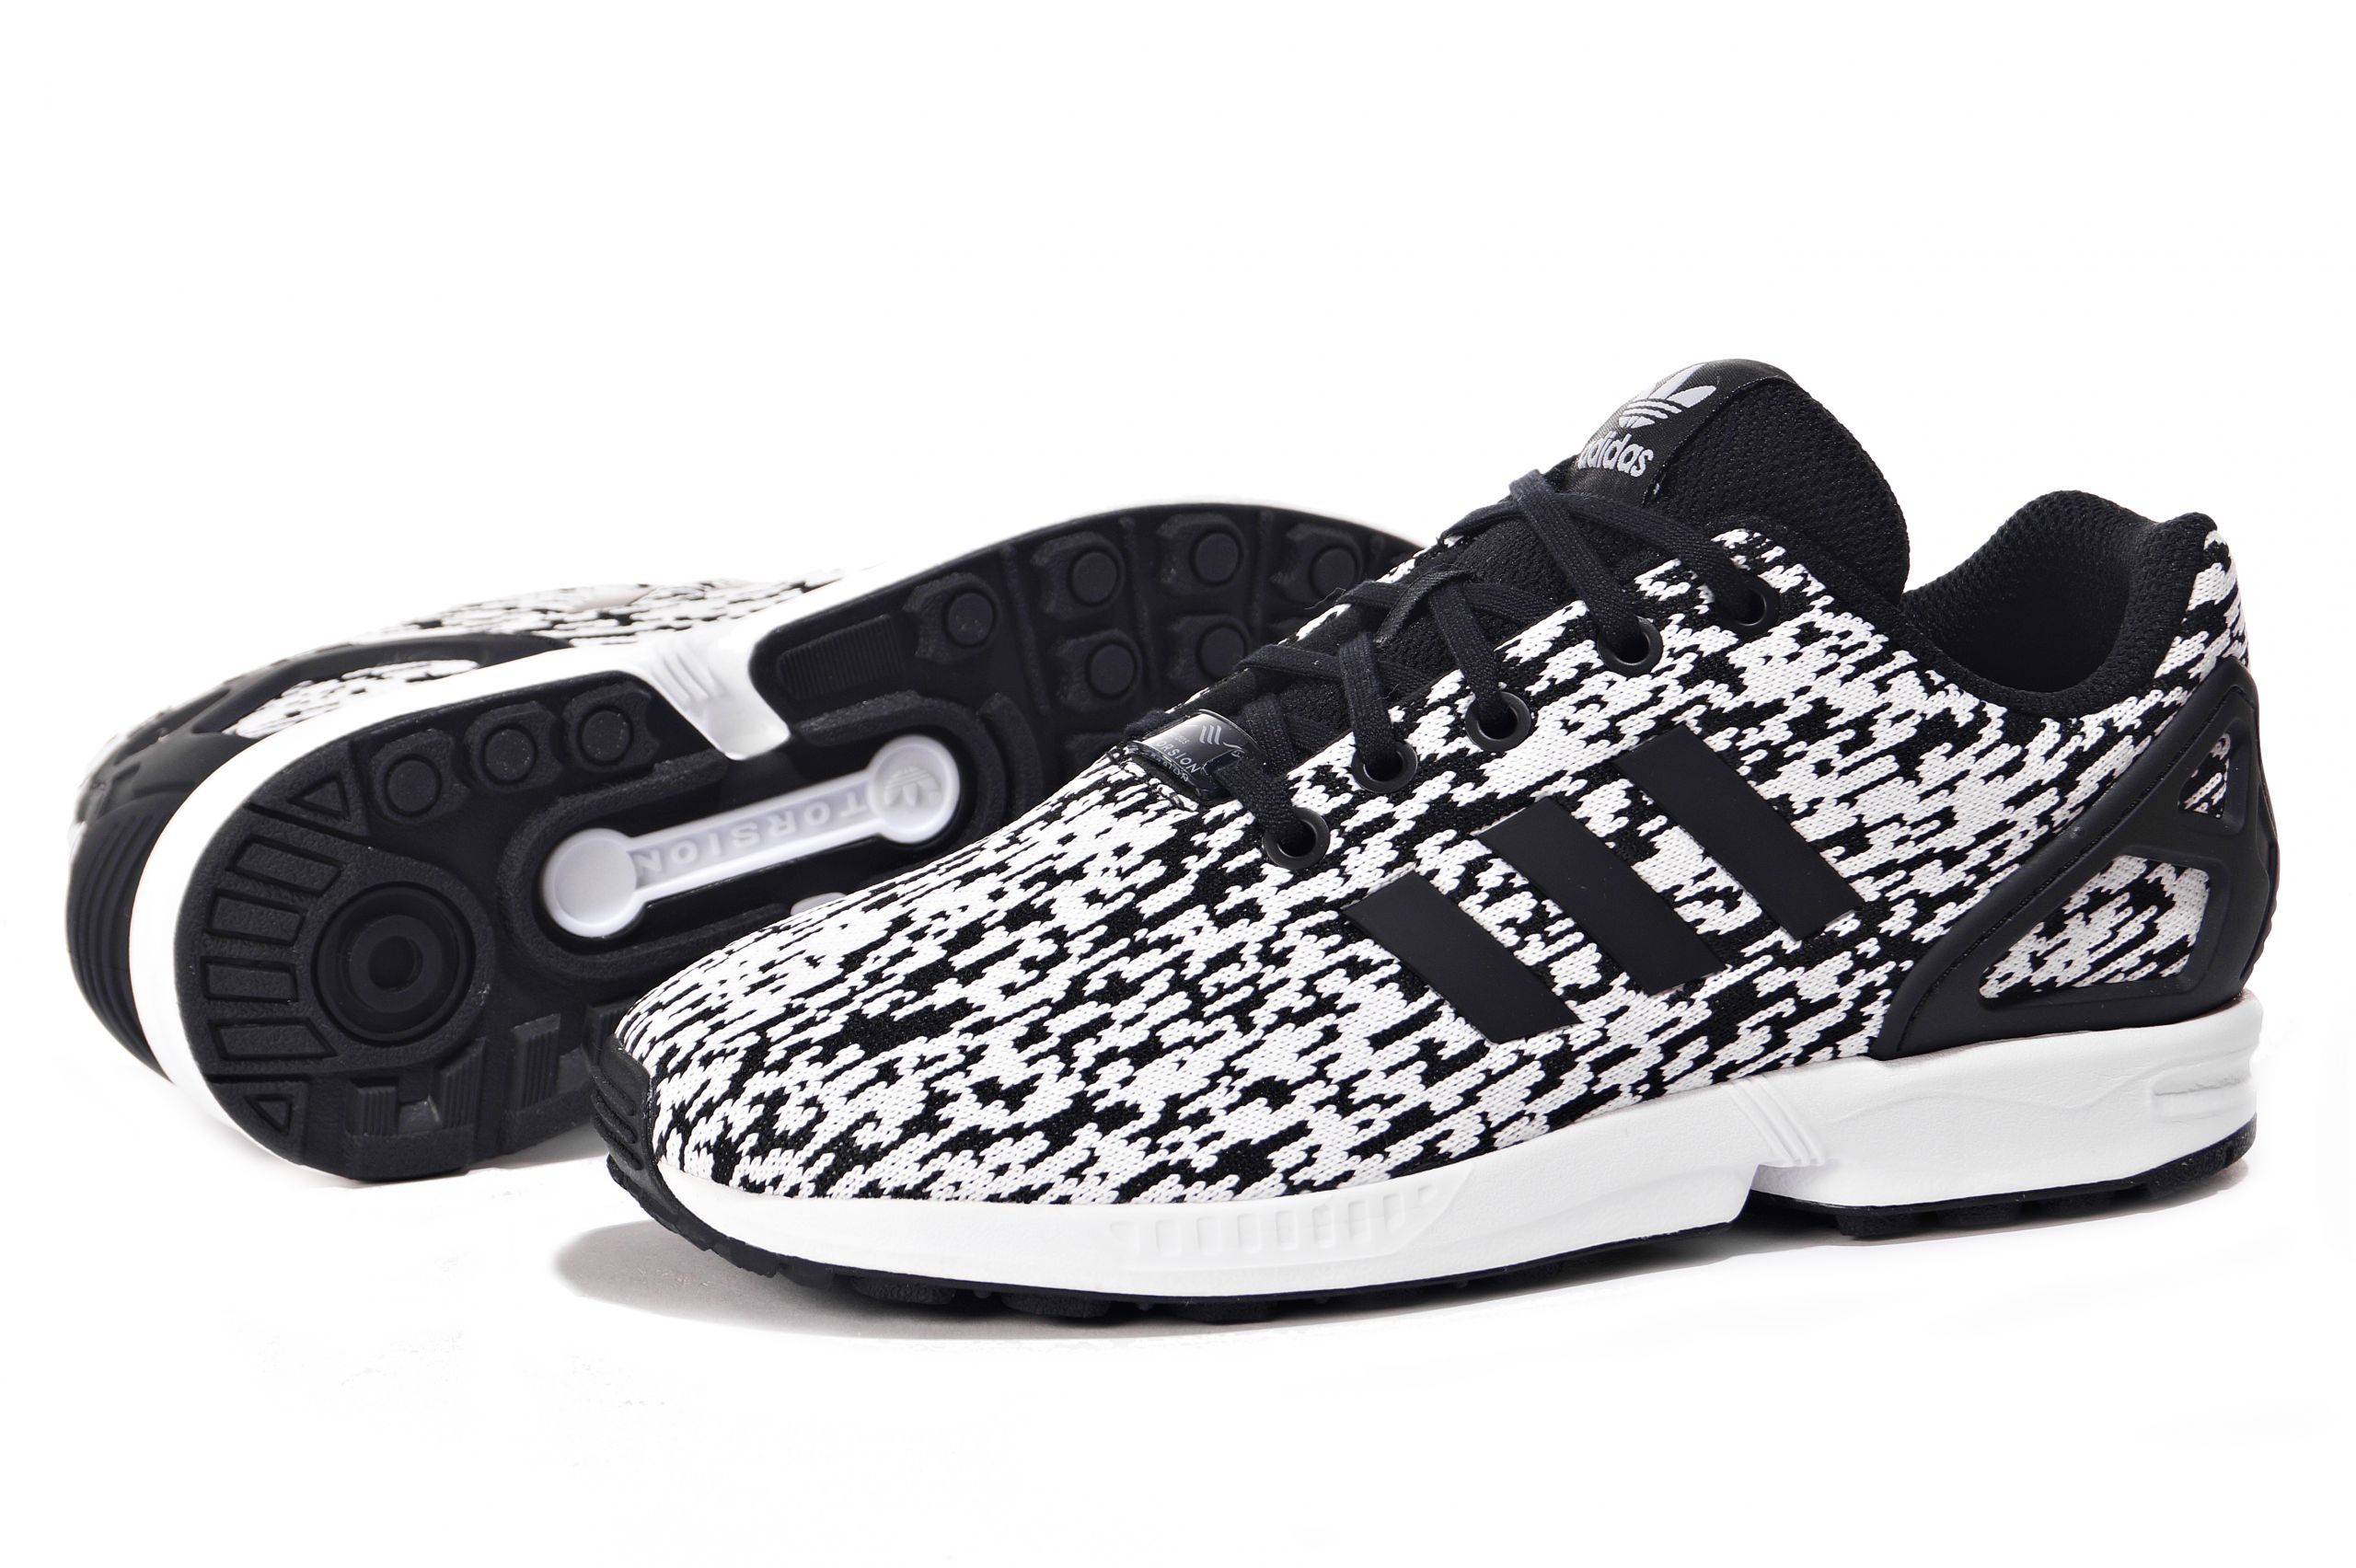 BUTY ADIDAS ZX FLUX J BY9829 ORIGINALS R. 36 23